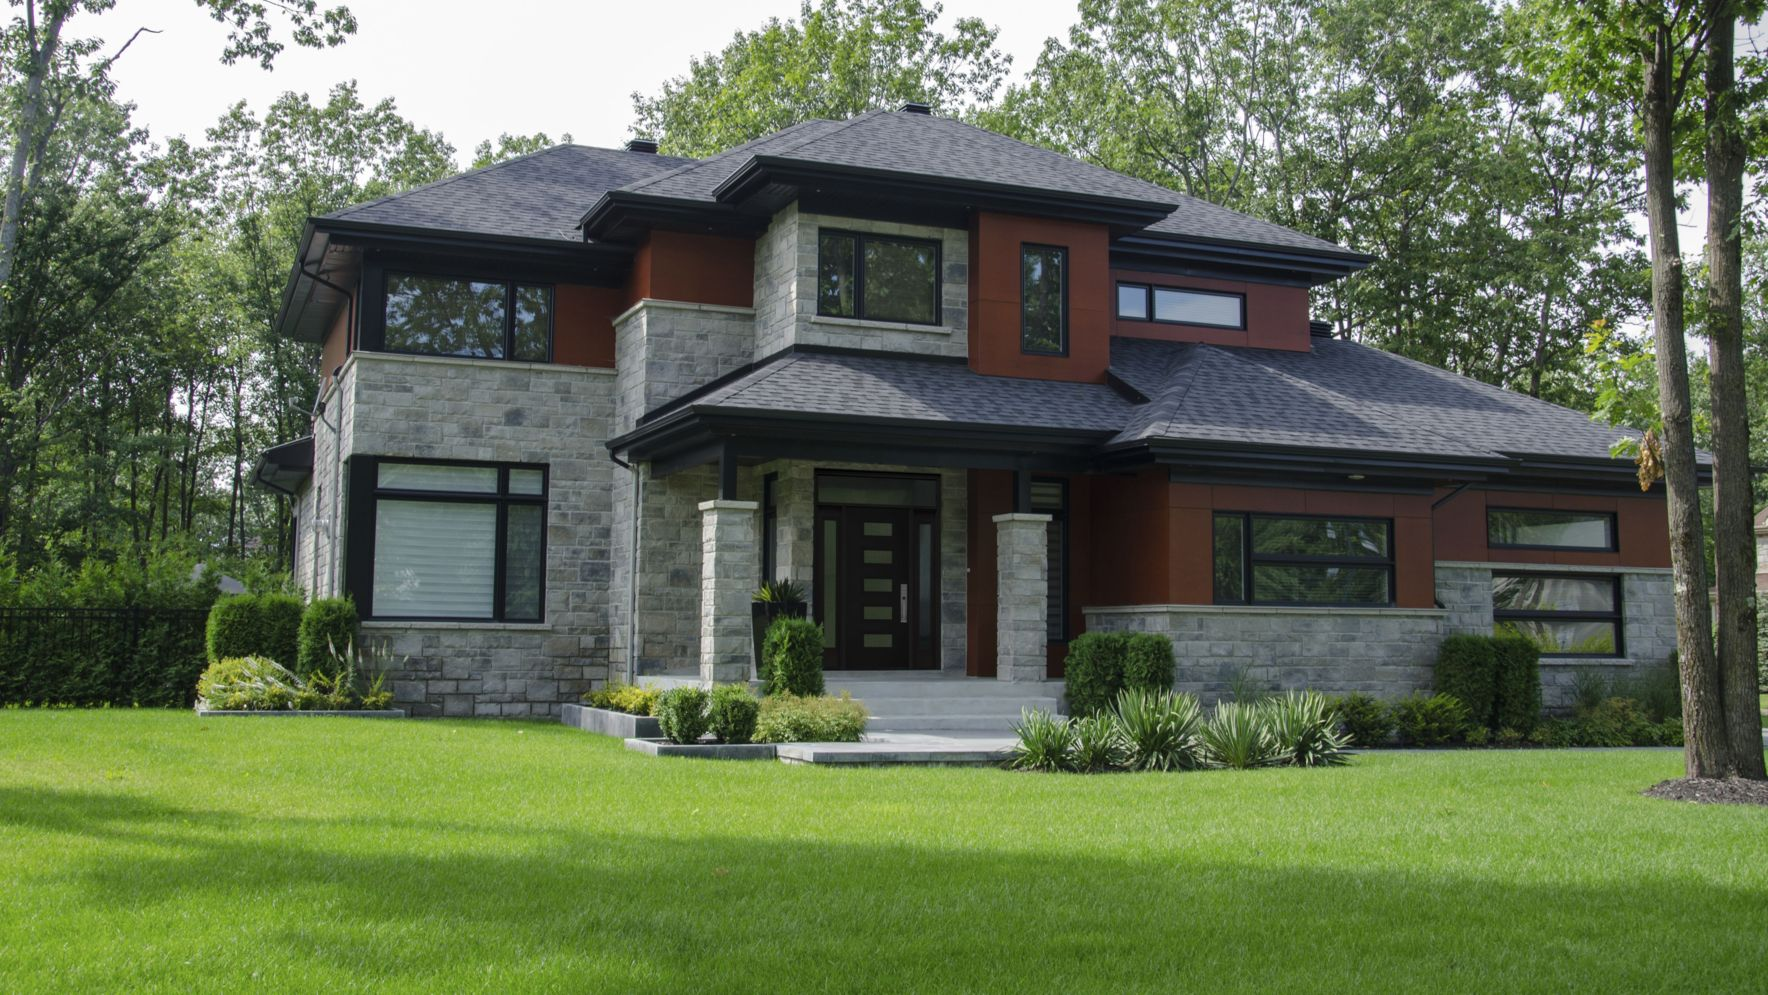 Modern house with new farmhouse exterior design pulling out country charm and warm welcoming display Image 39